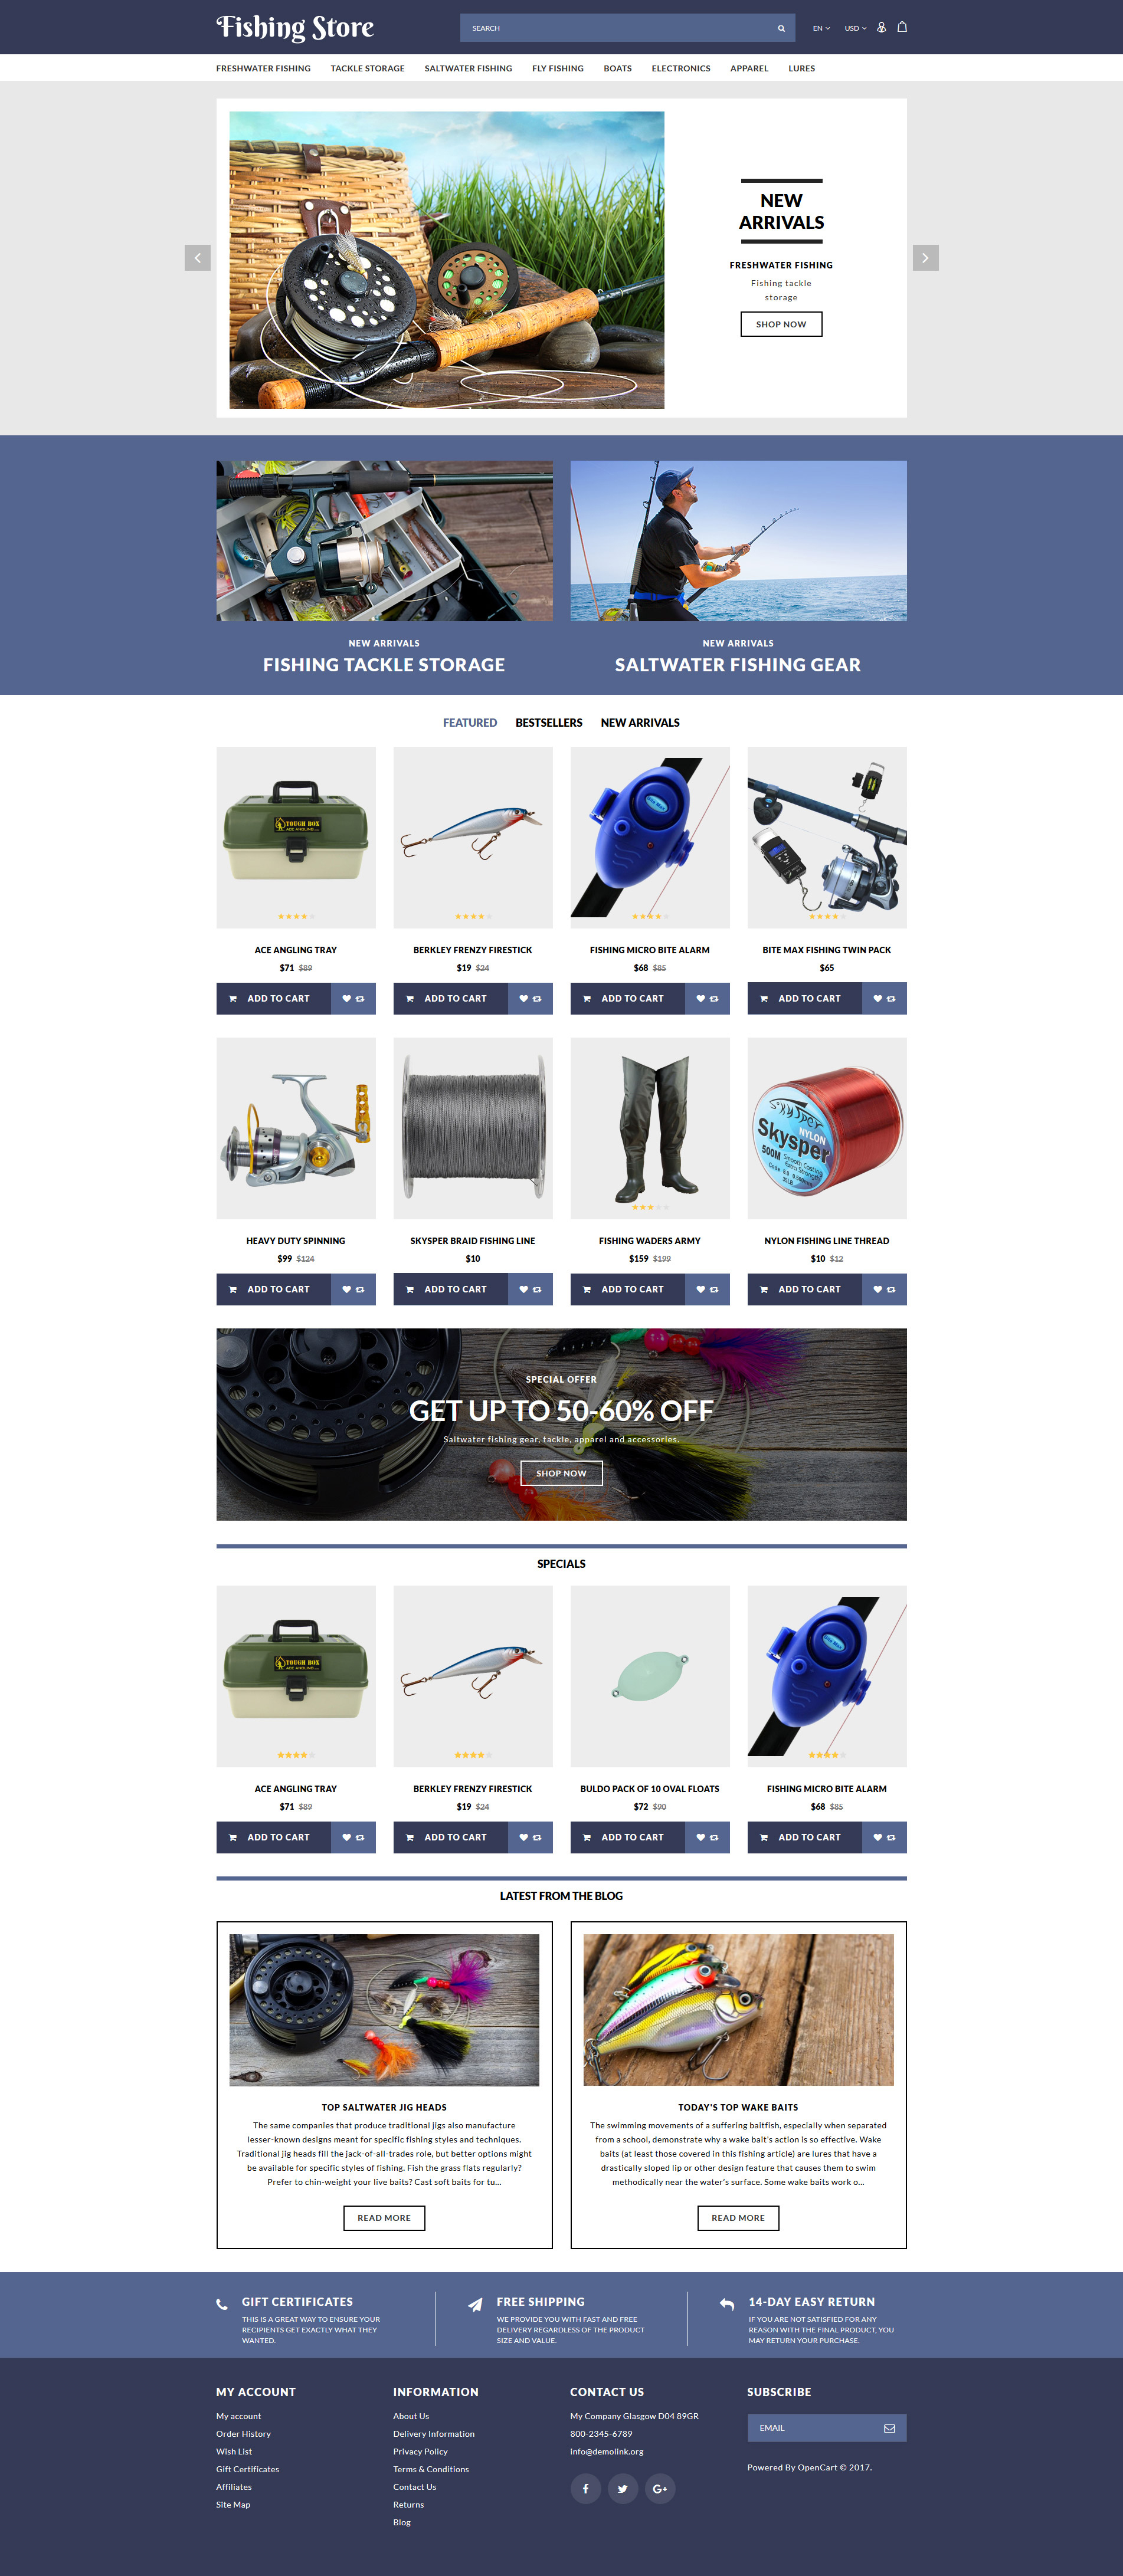 OpenCart Templates | OpenCart Themes | TemplateMonster